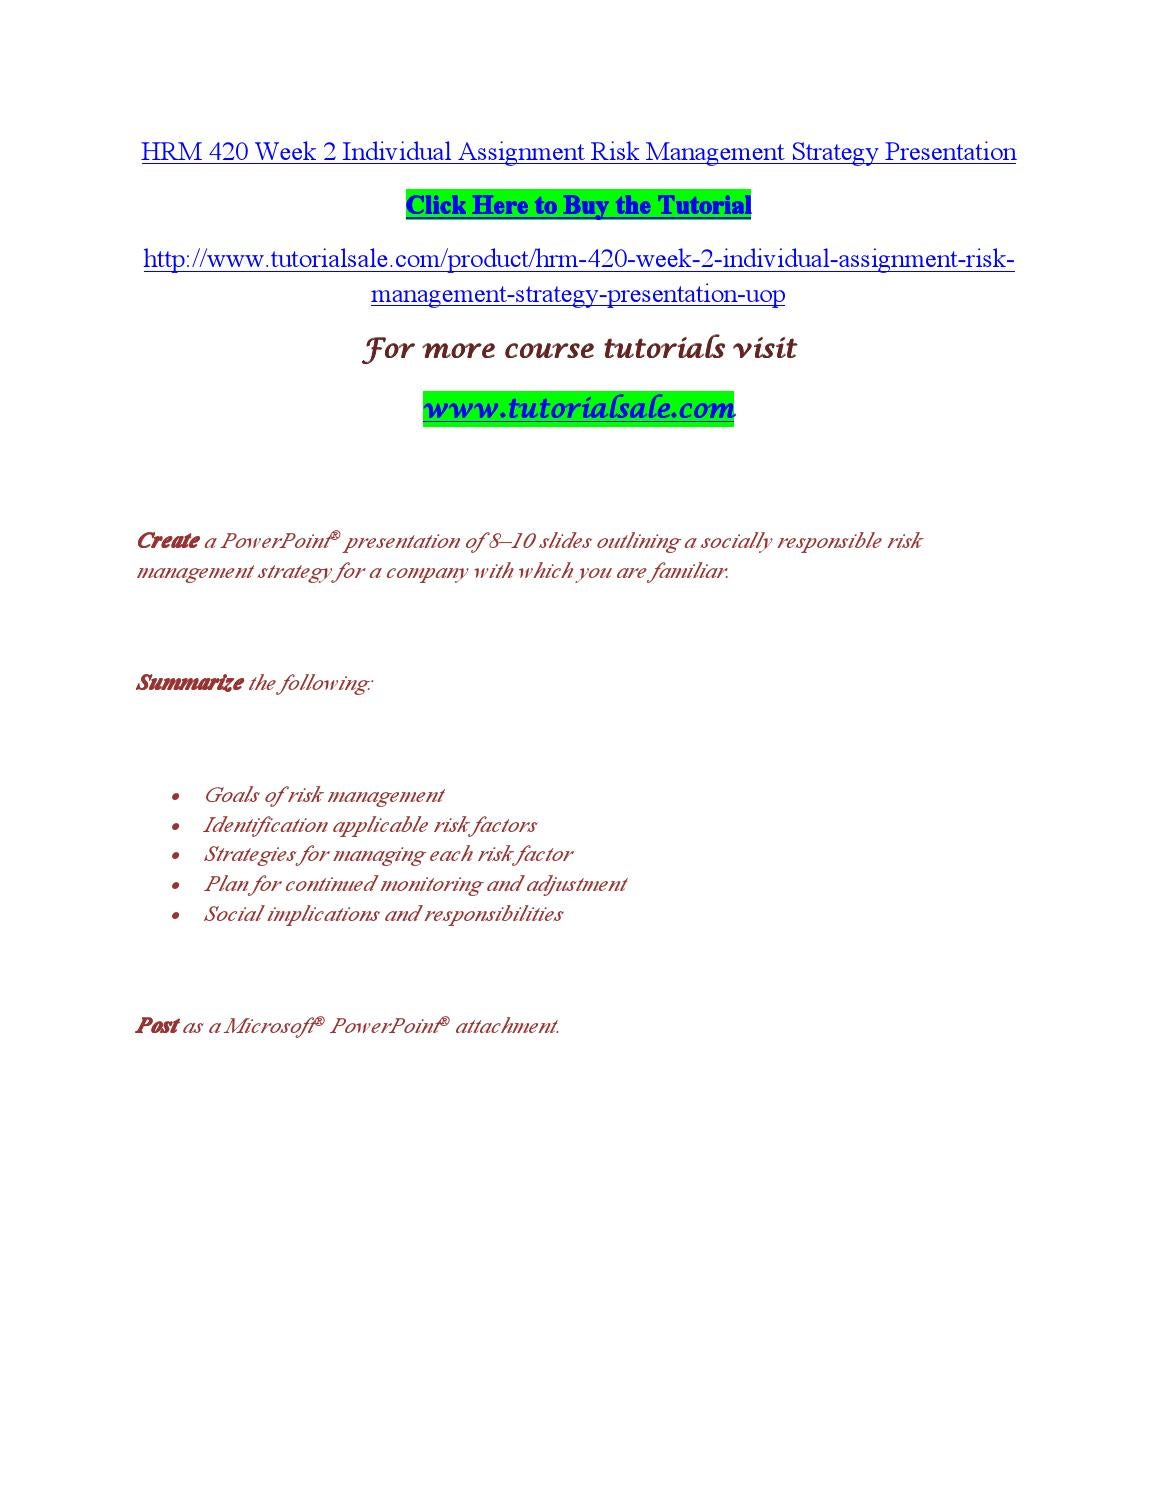 Hrm 420 week 2 individual assignment risk management